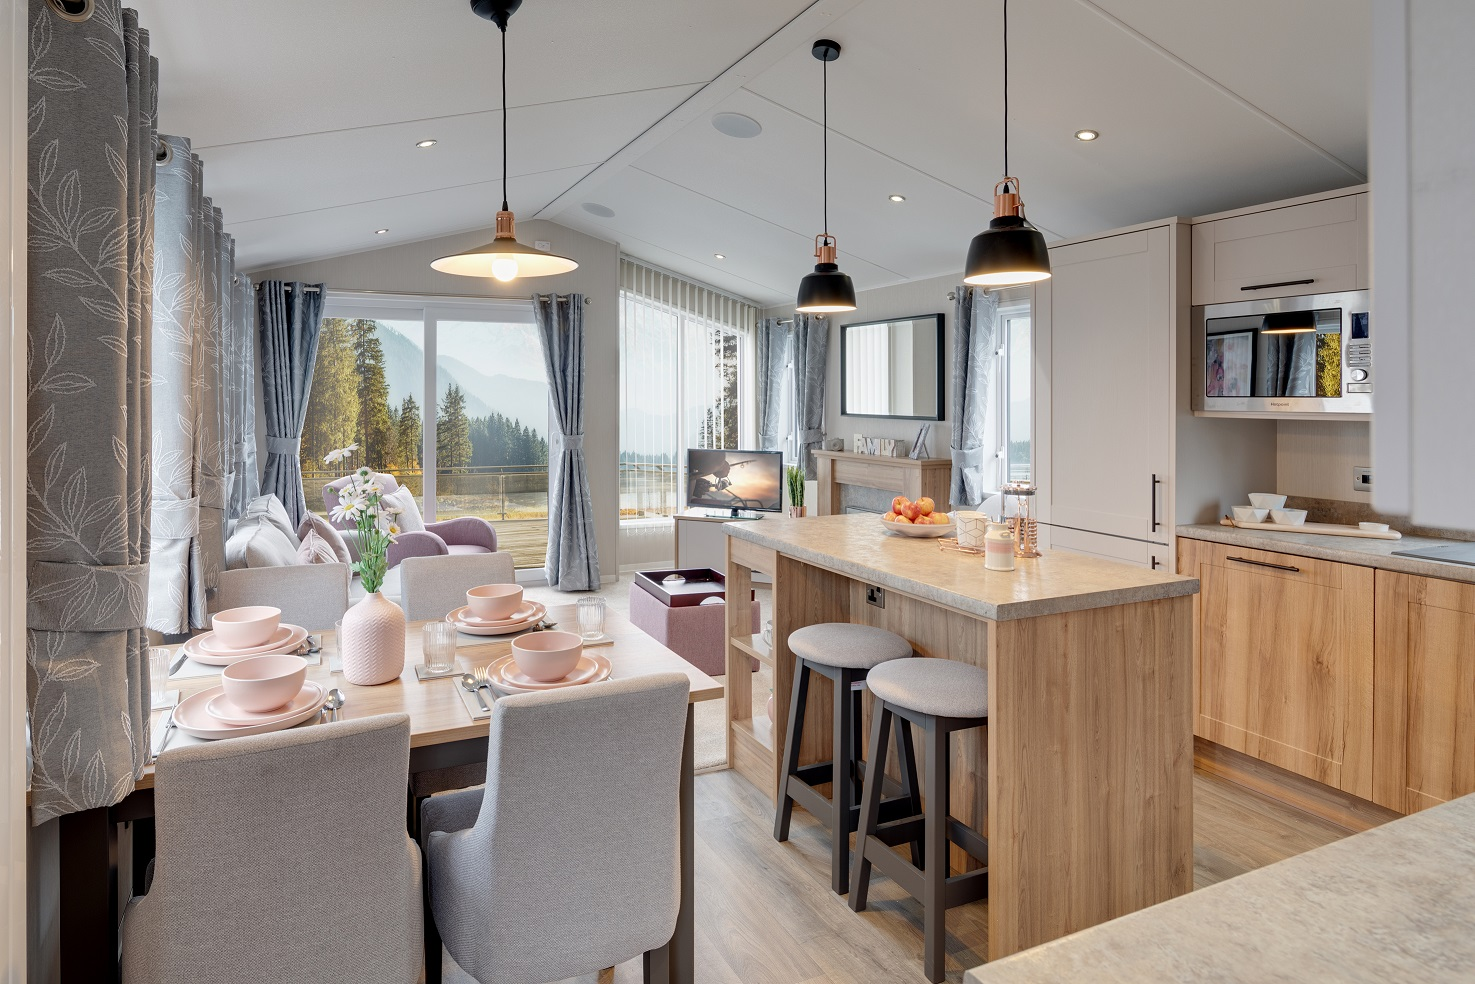 Willerby Waverley: New Static Caravans and Holiday Homes for Sale, Clifton, Morpeth Large Image 1